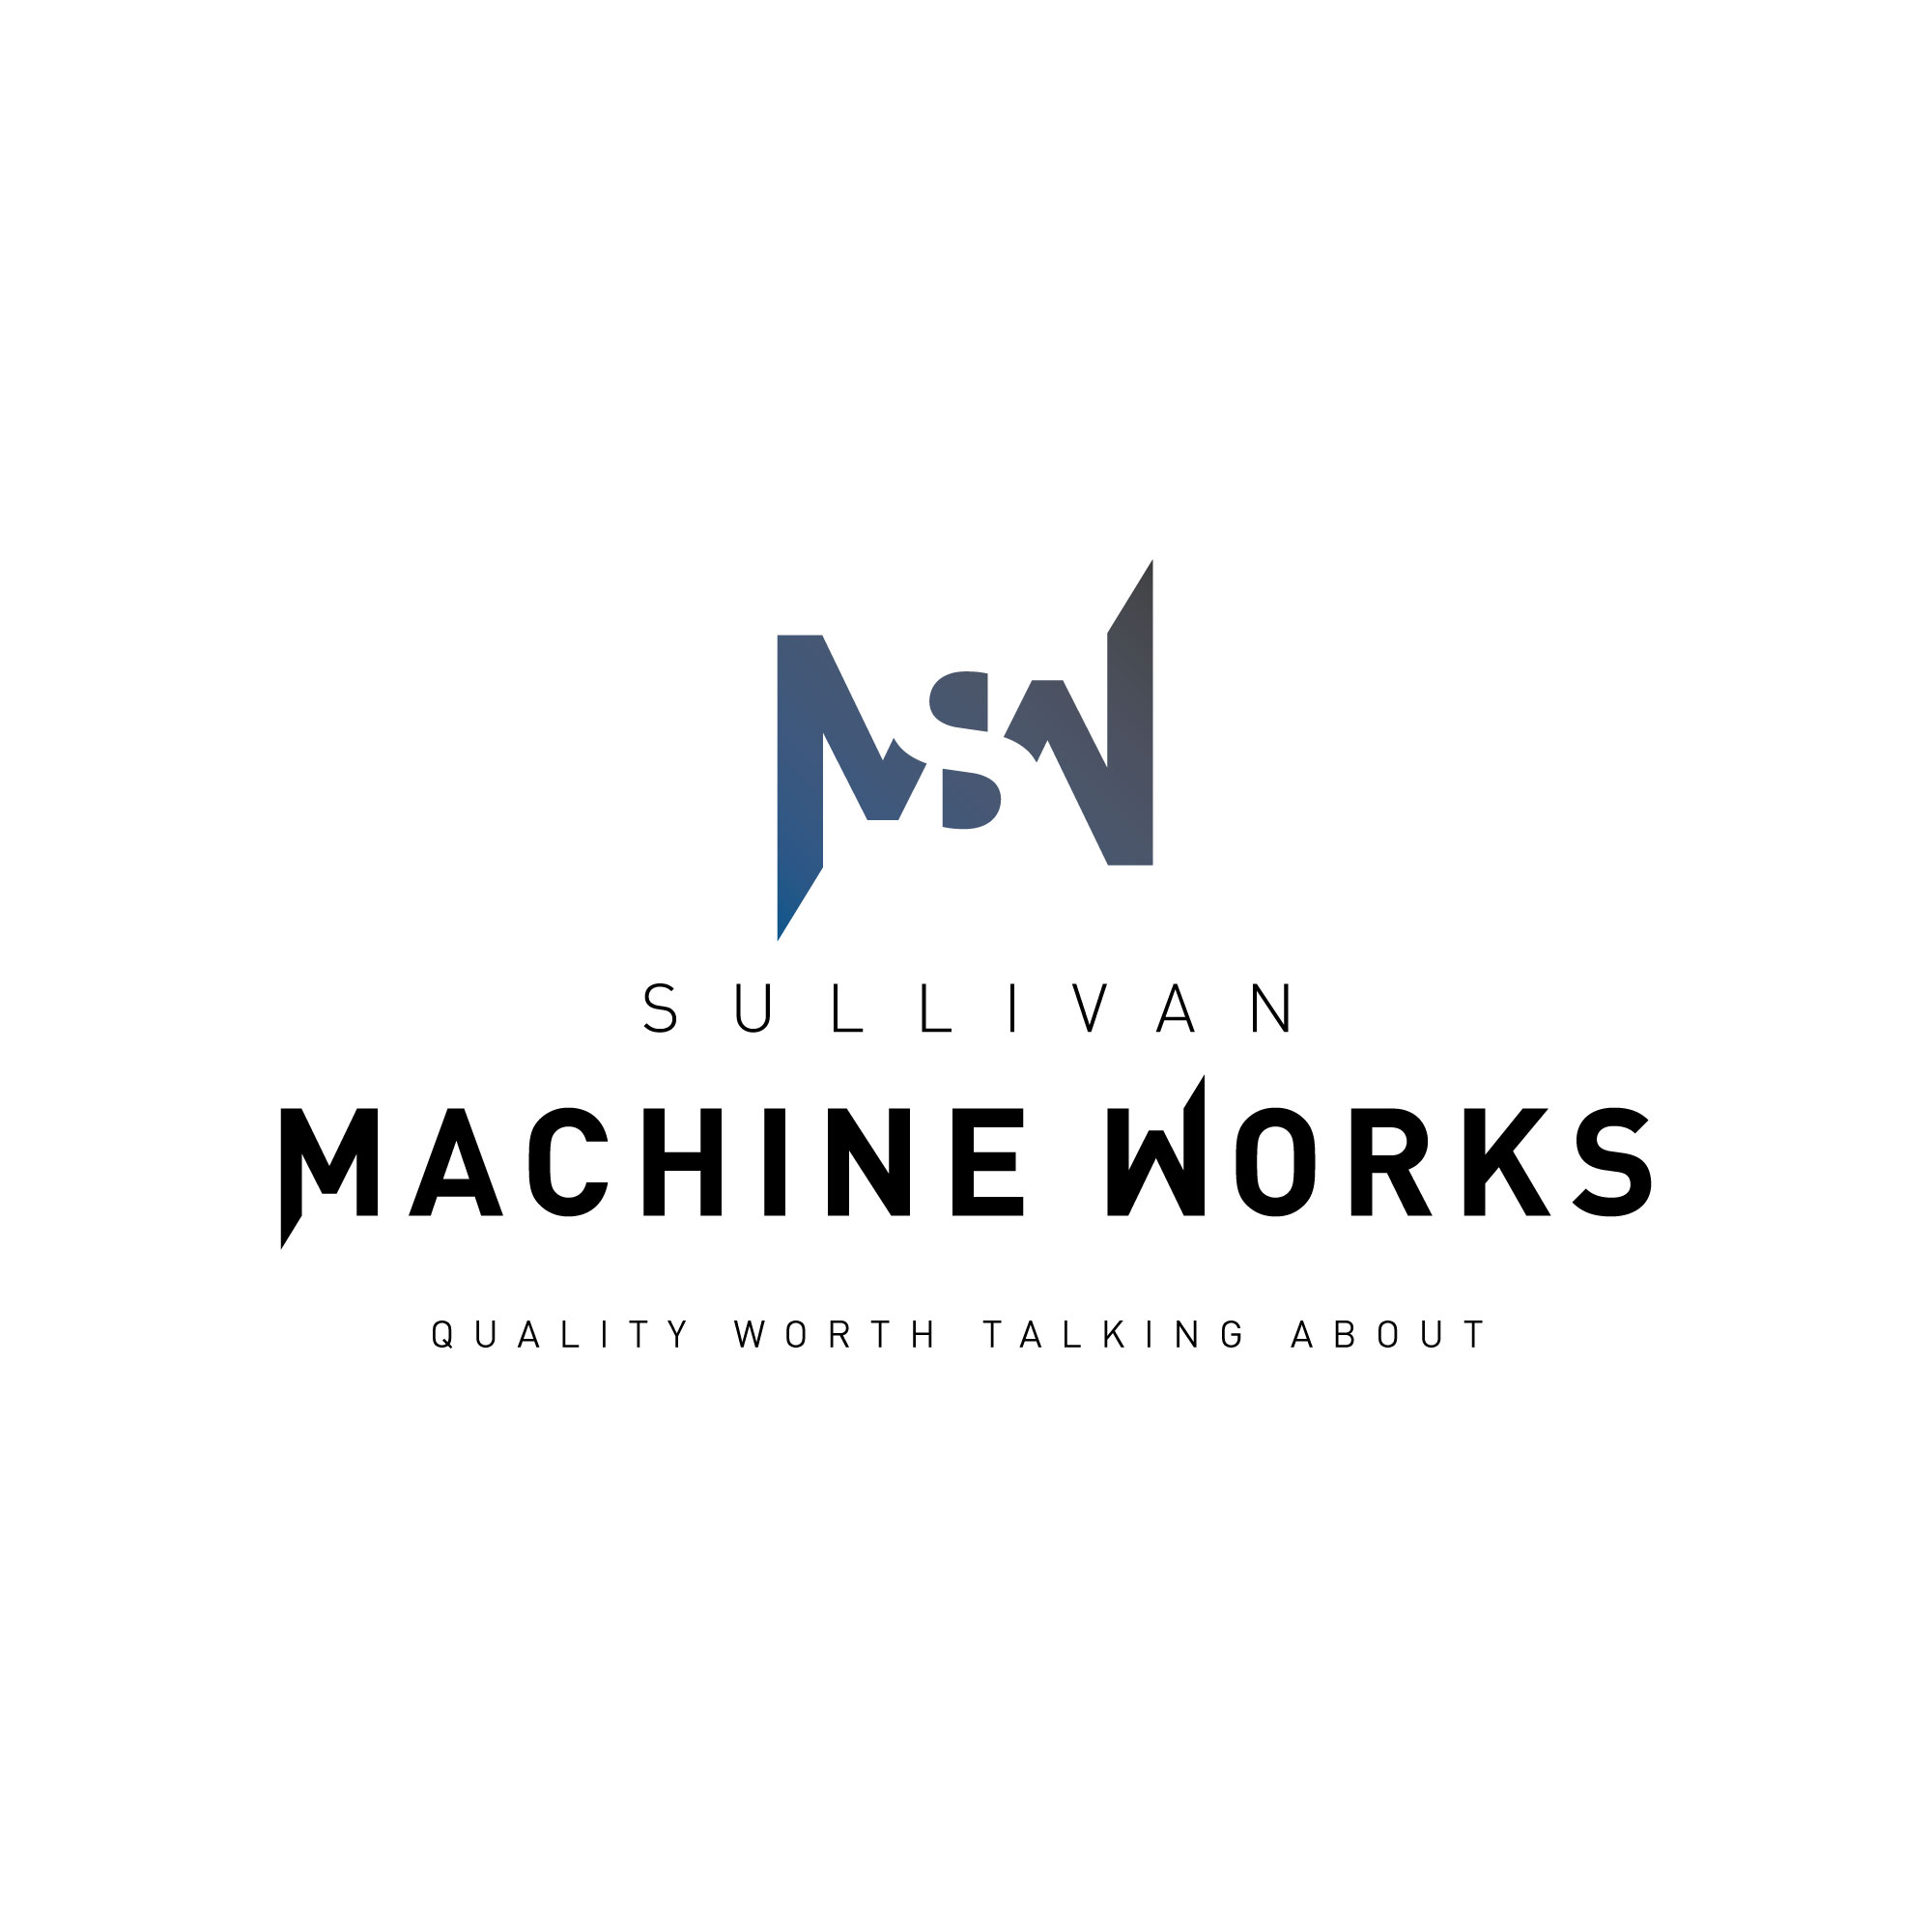 Sullivan Machine Works